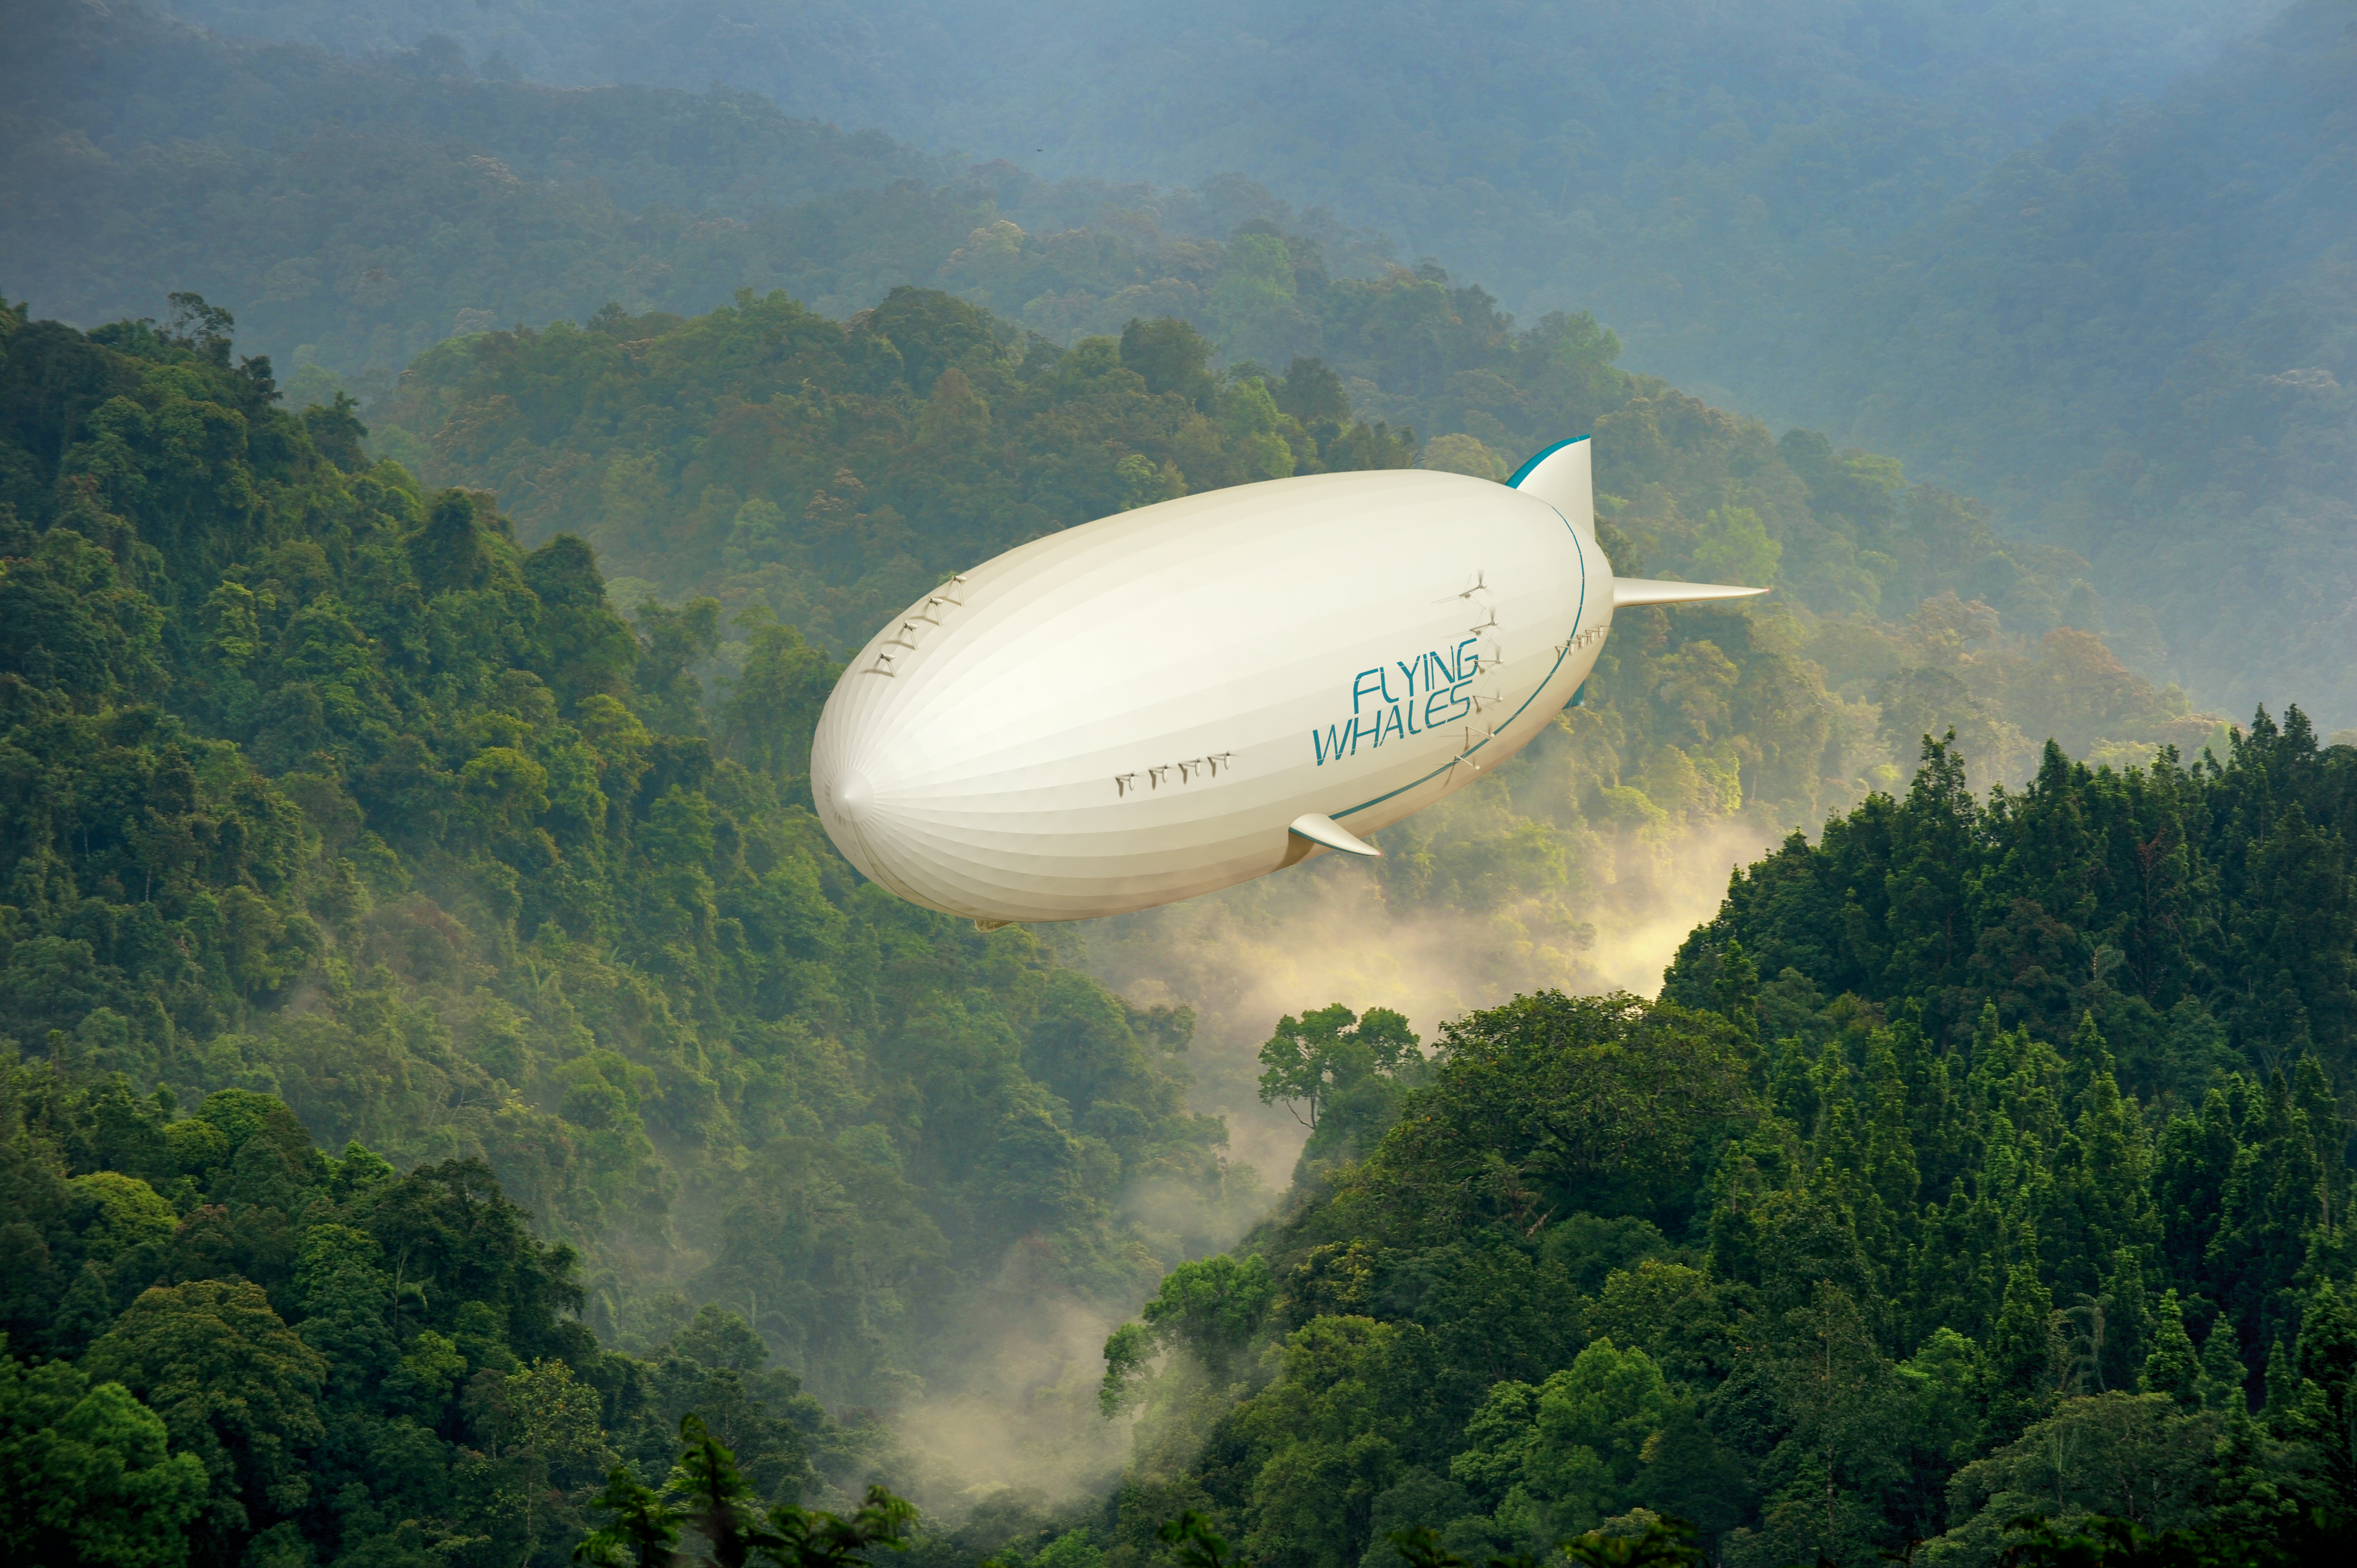 FLYING WHALES airship in flight